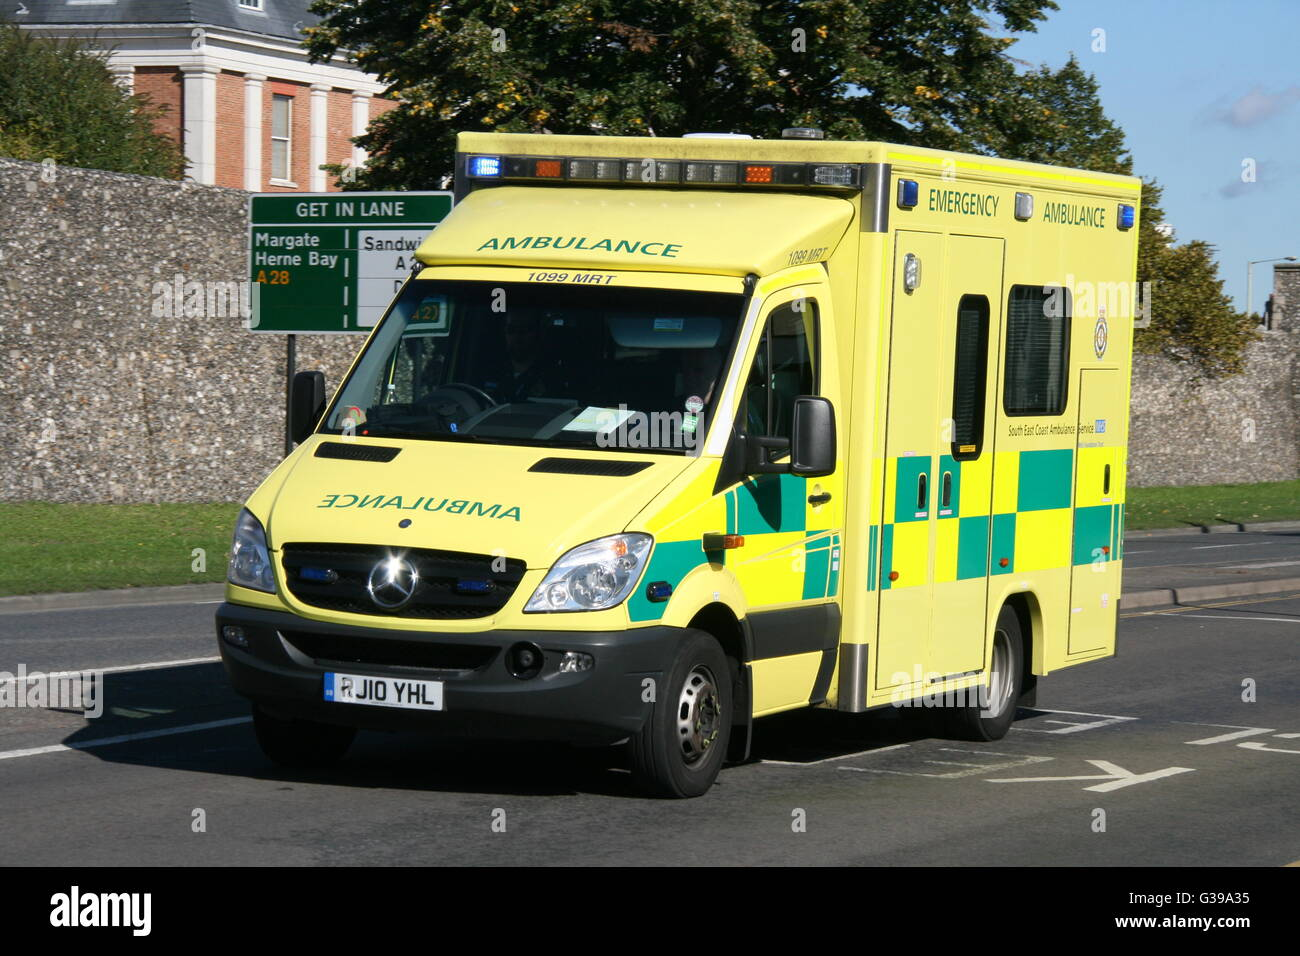 SOUTH EAST COAST AMBULANCE SERVICE MERCEDES AMBULANCE IN CANTERBURY ON AN EMERGENCY CALL WITH BLUE LIGHTS FLASHING - Stock Image